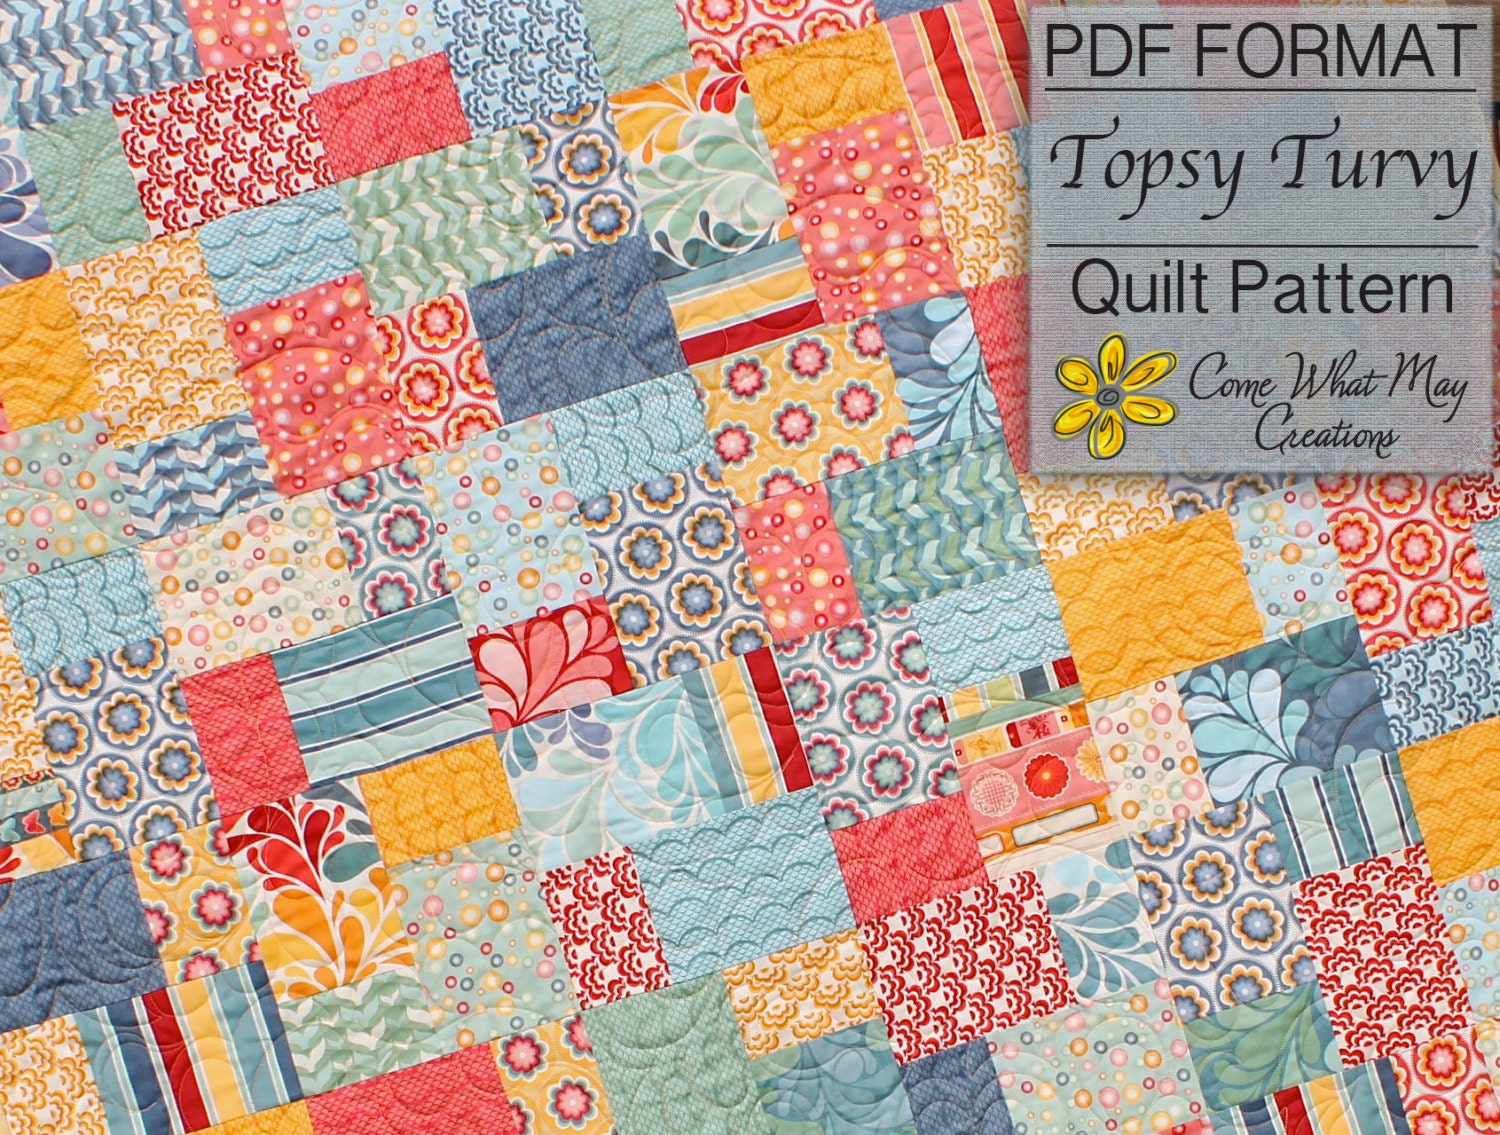 Topsy Turvy Quilt Pattern Lap Quilt Pattern Layer Cake Quilt